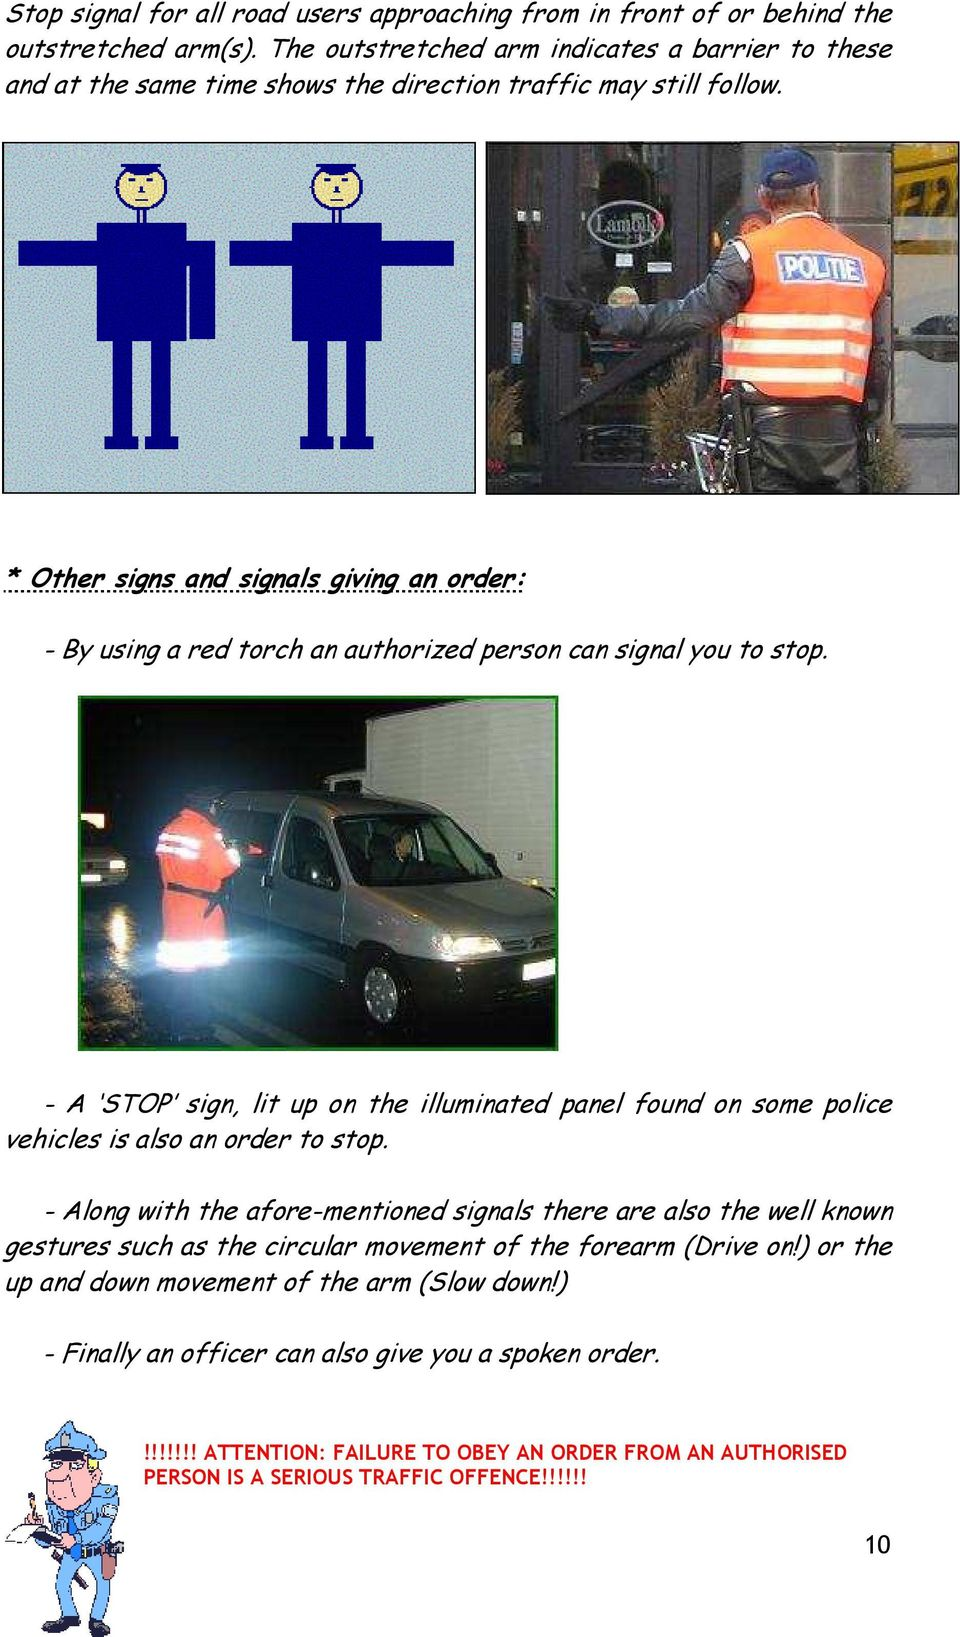 * Other signs and signals giving an order: - By using a red torch an authorized person can signal you to stop.